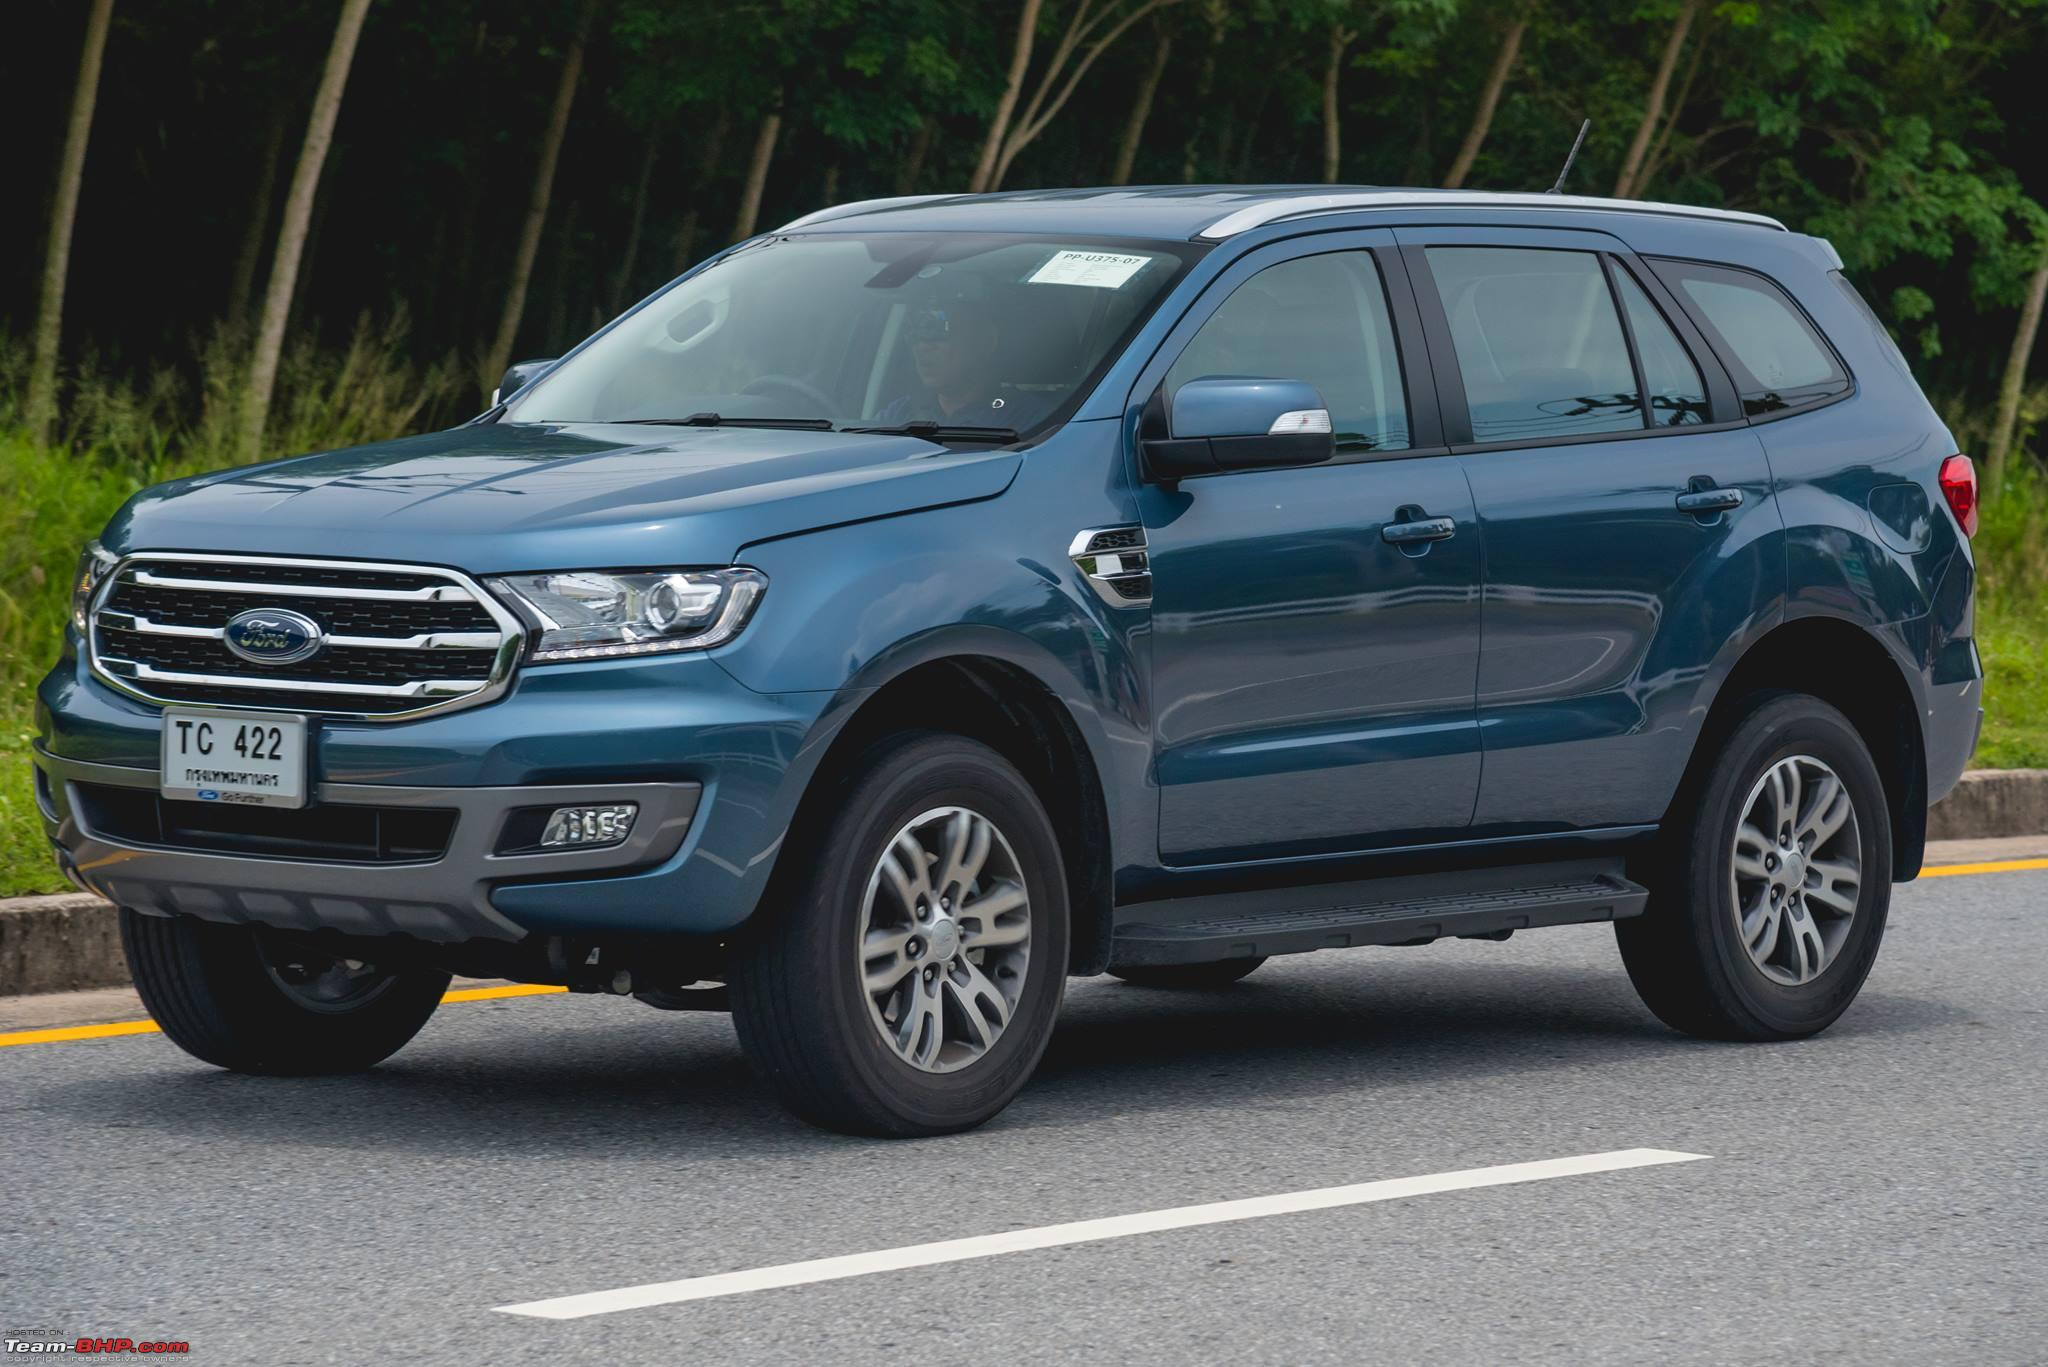 Ford Everest Facelift 2018 >> 2018 Ford Everest (Endeavour) spied completely undisguised - Team-BHP